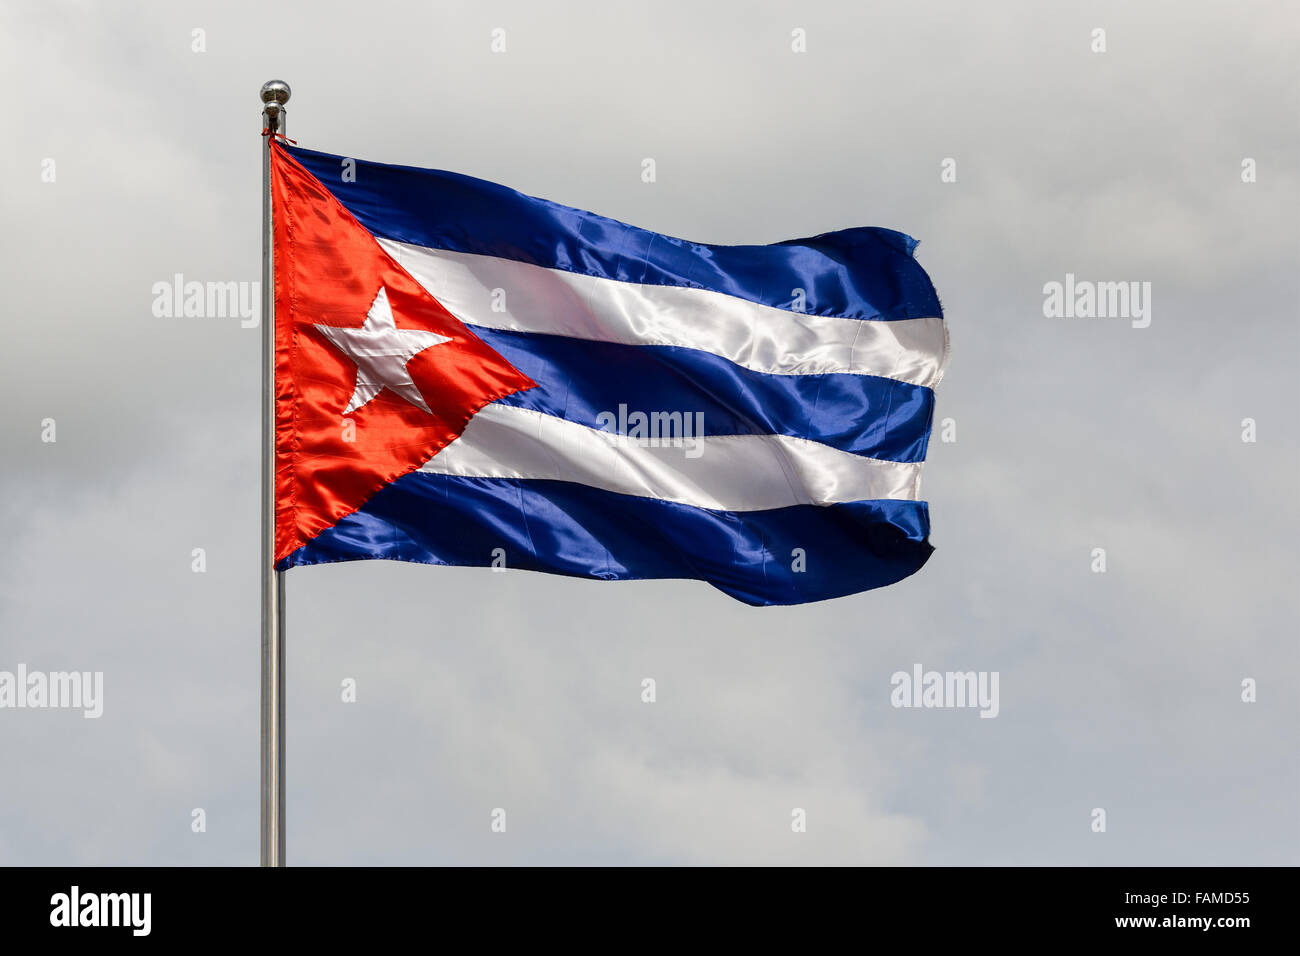 Cuban flag blowing in wind - Stock Image